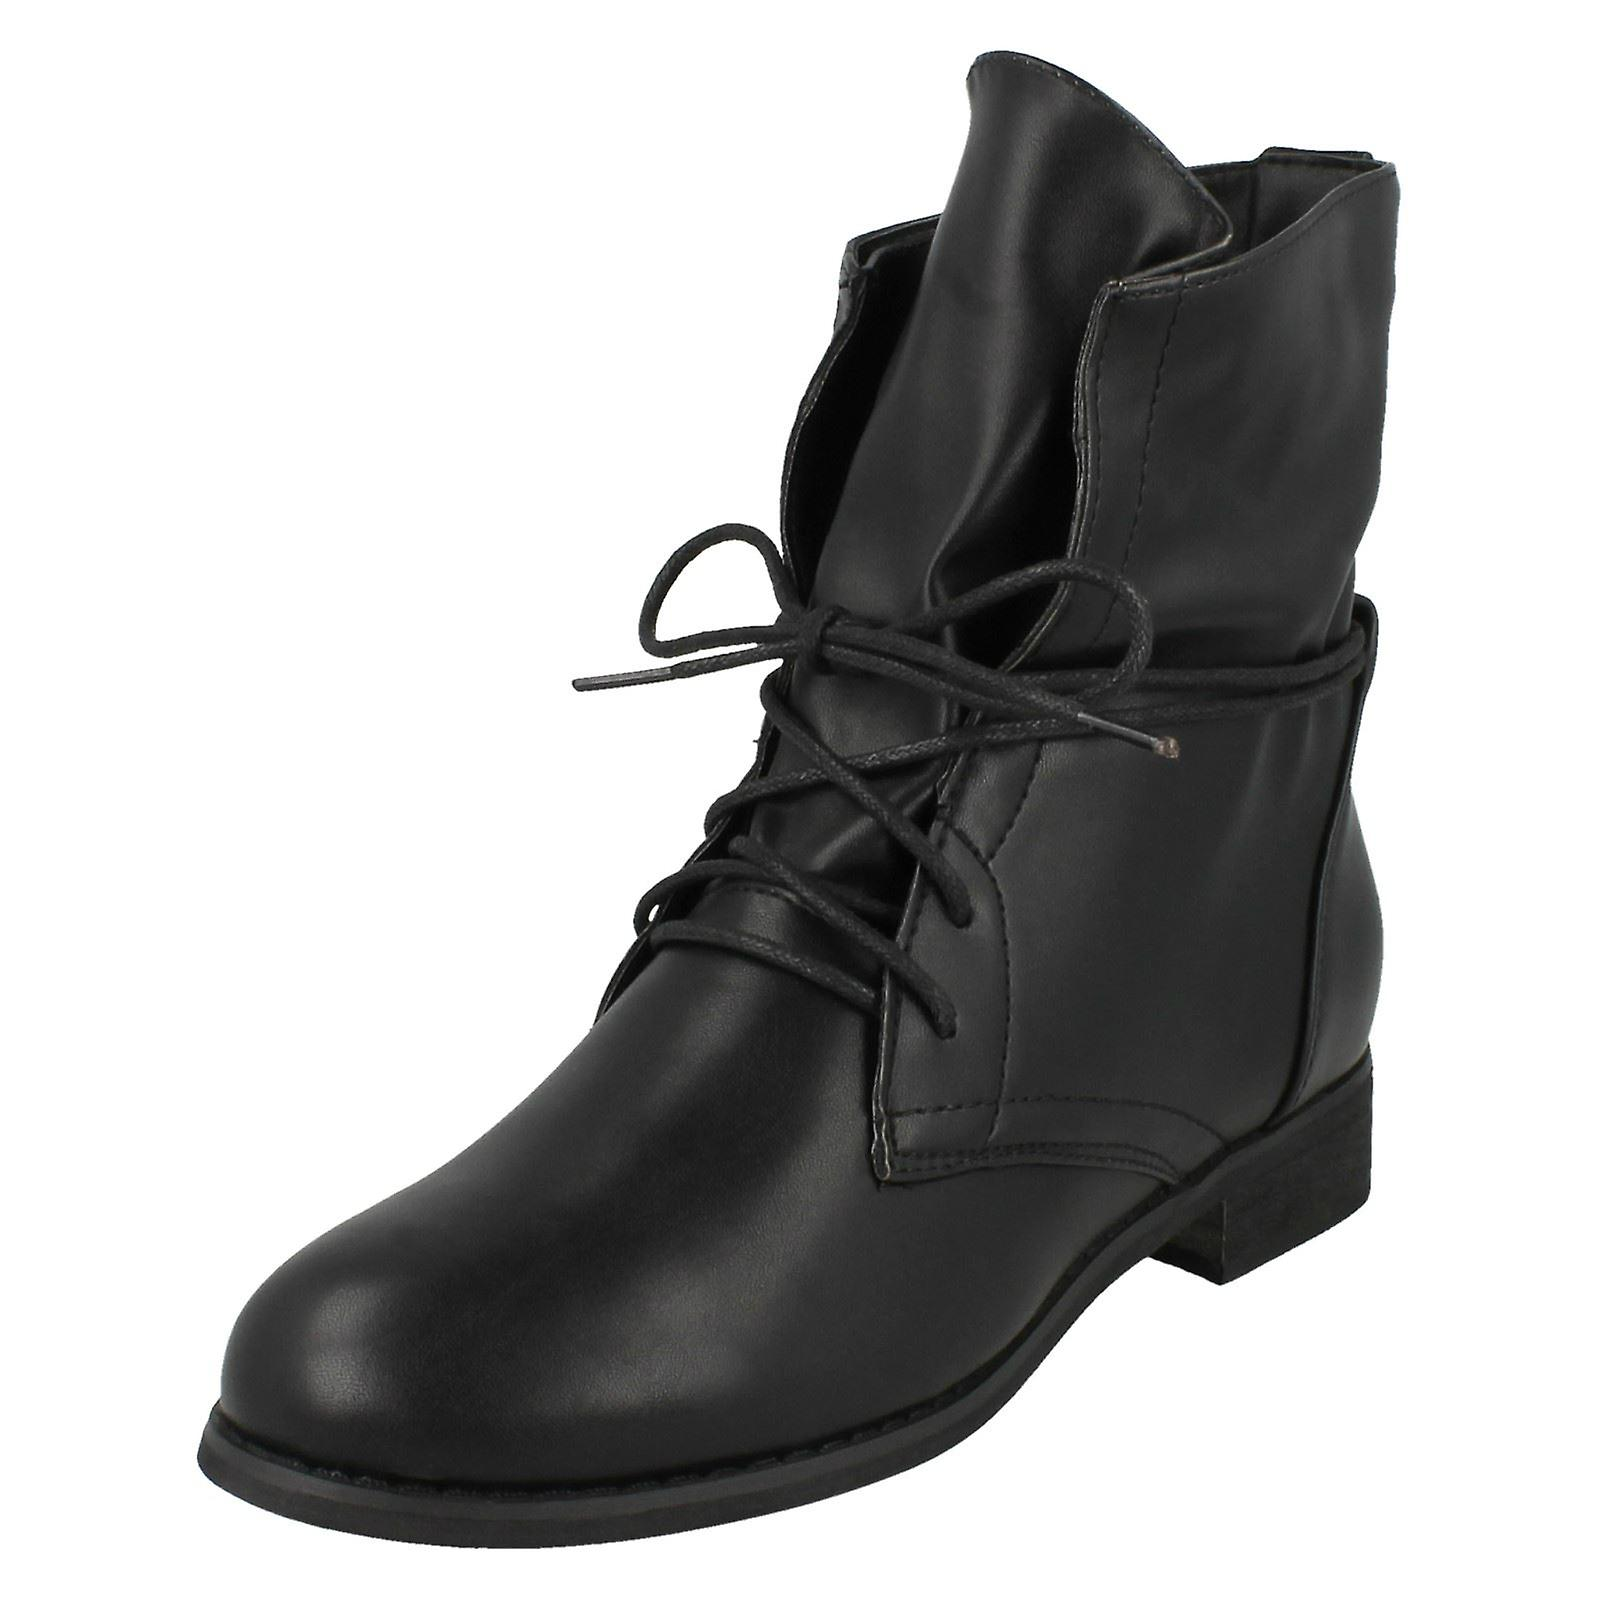 Ladies Spot On Low Heel Lace Up Ankle Boots 3E8Ov